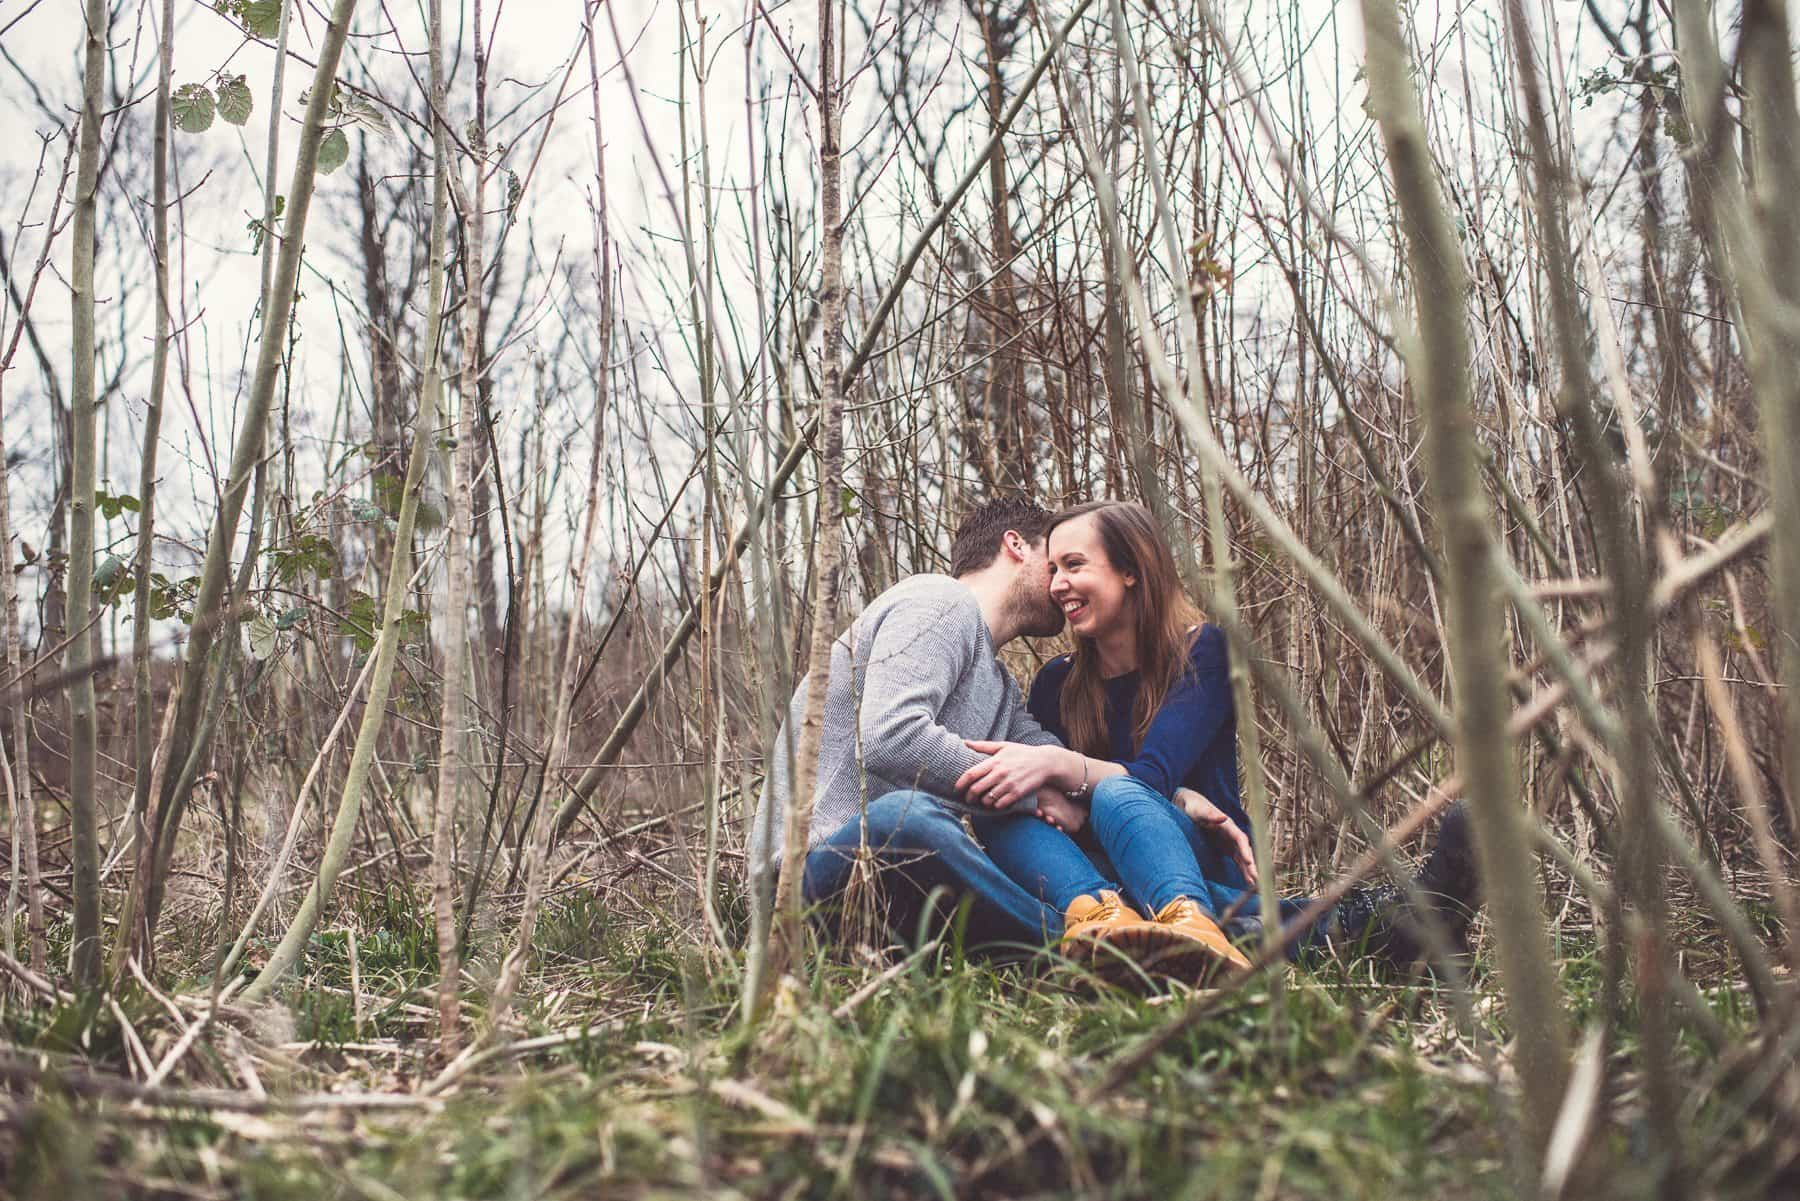 Couple laughing in a bamboo field surrounded by twigs and bamboo by creative wedding photographer Maria Assia Photography